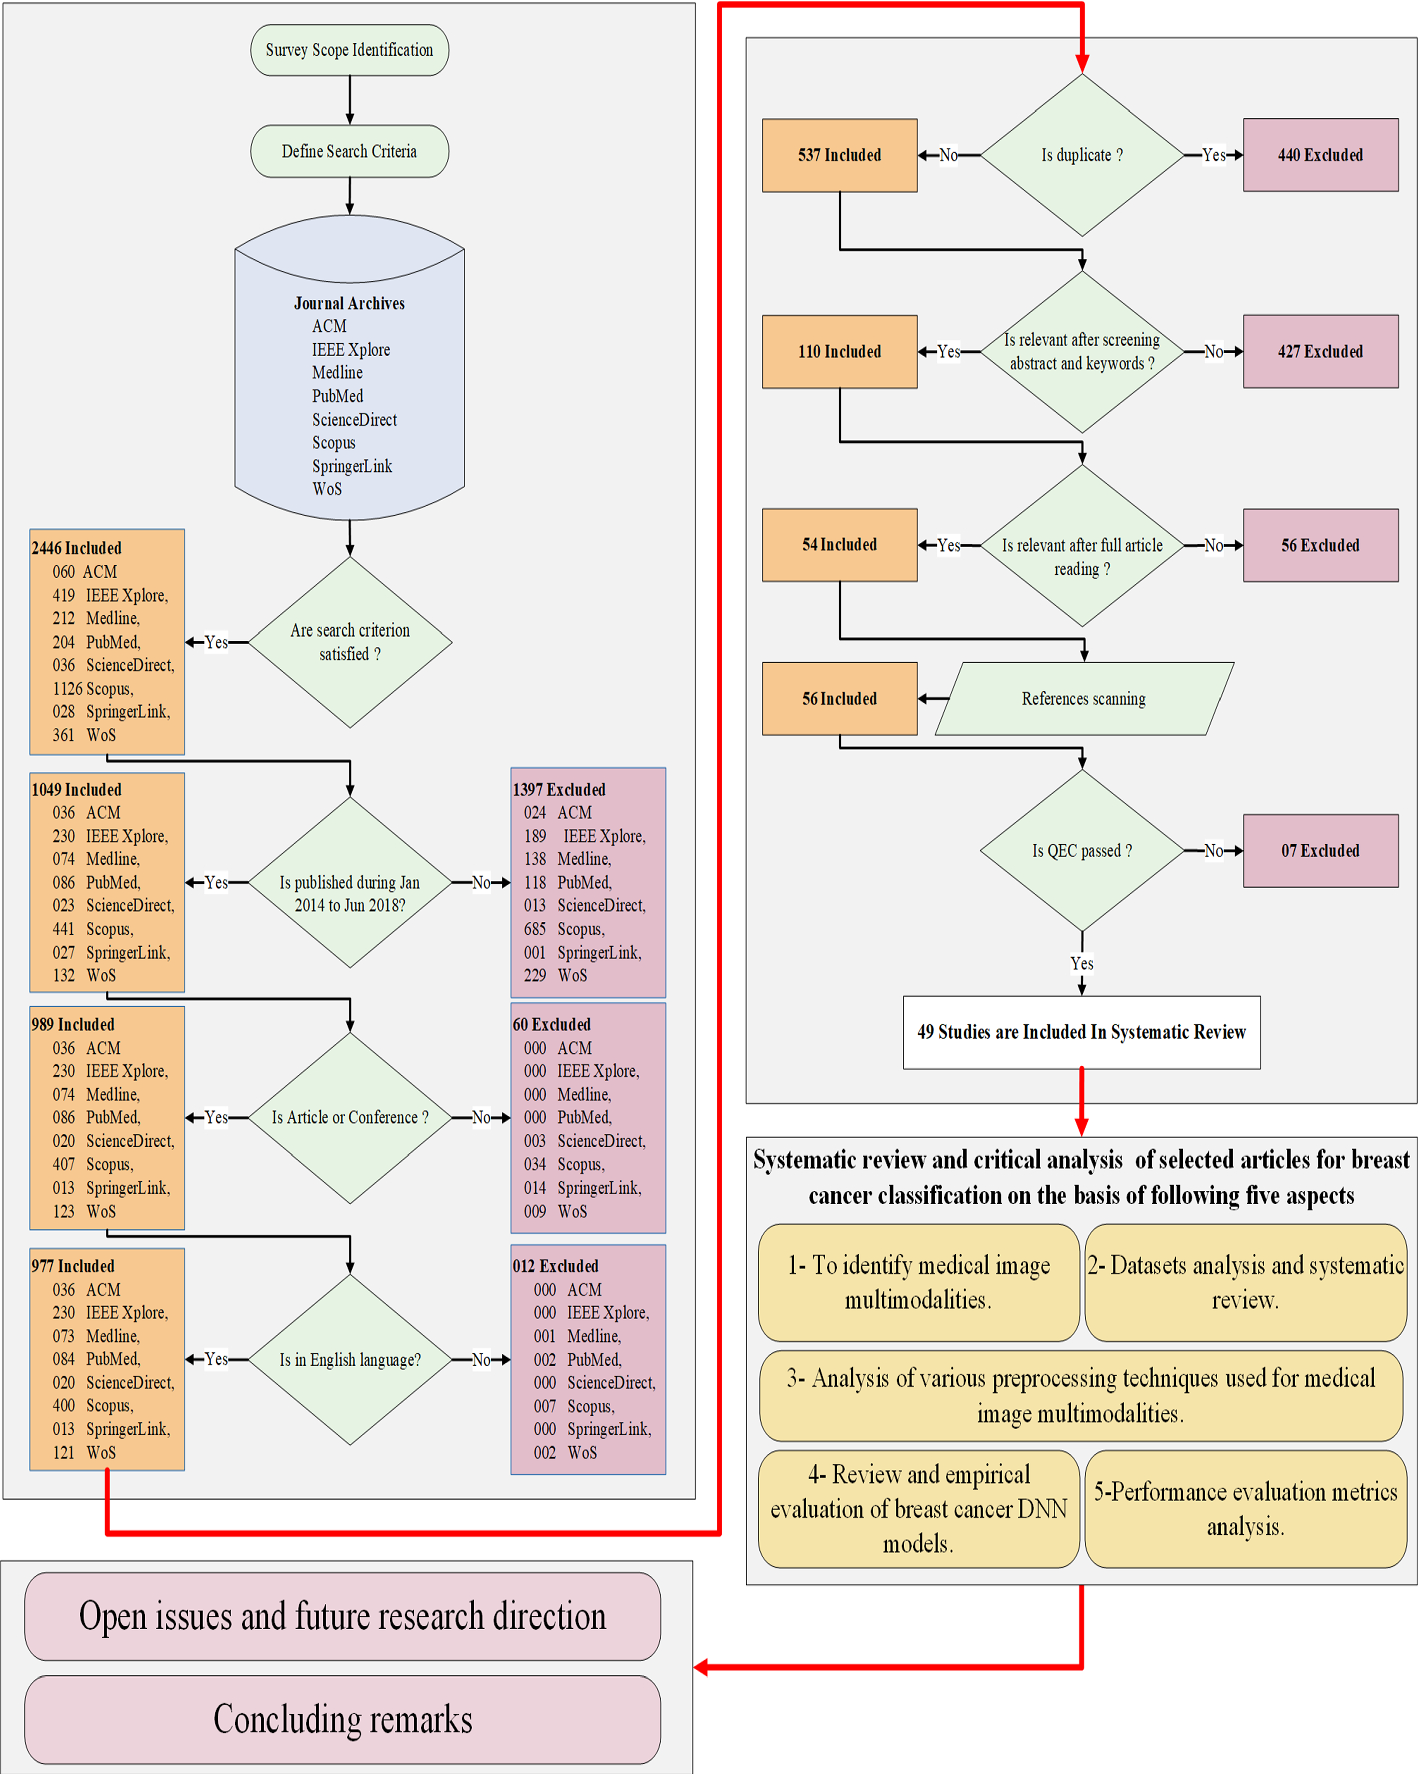 Deep Learning Based Breast Cancer Classification Through